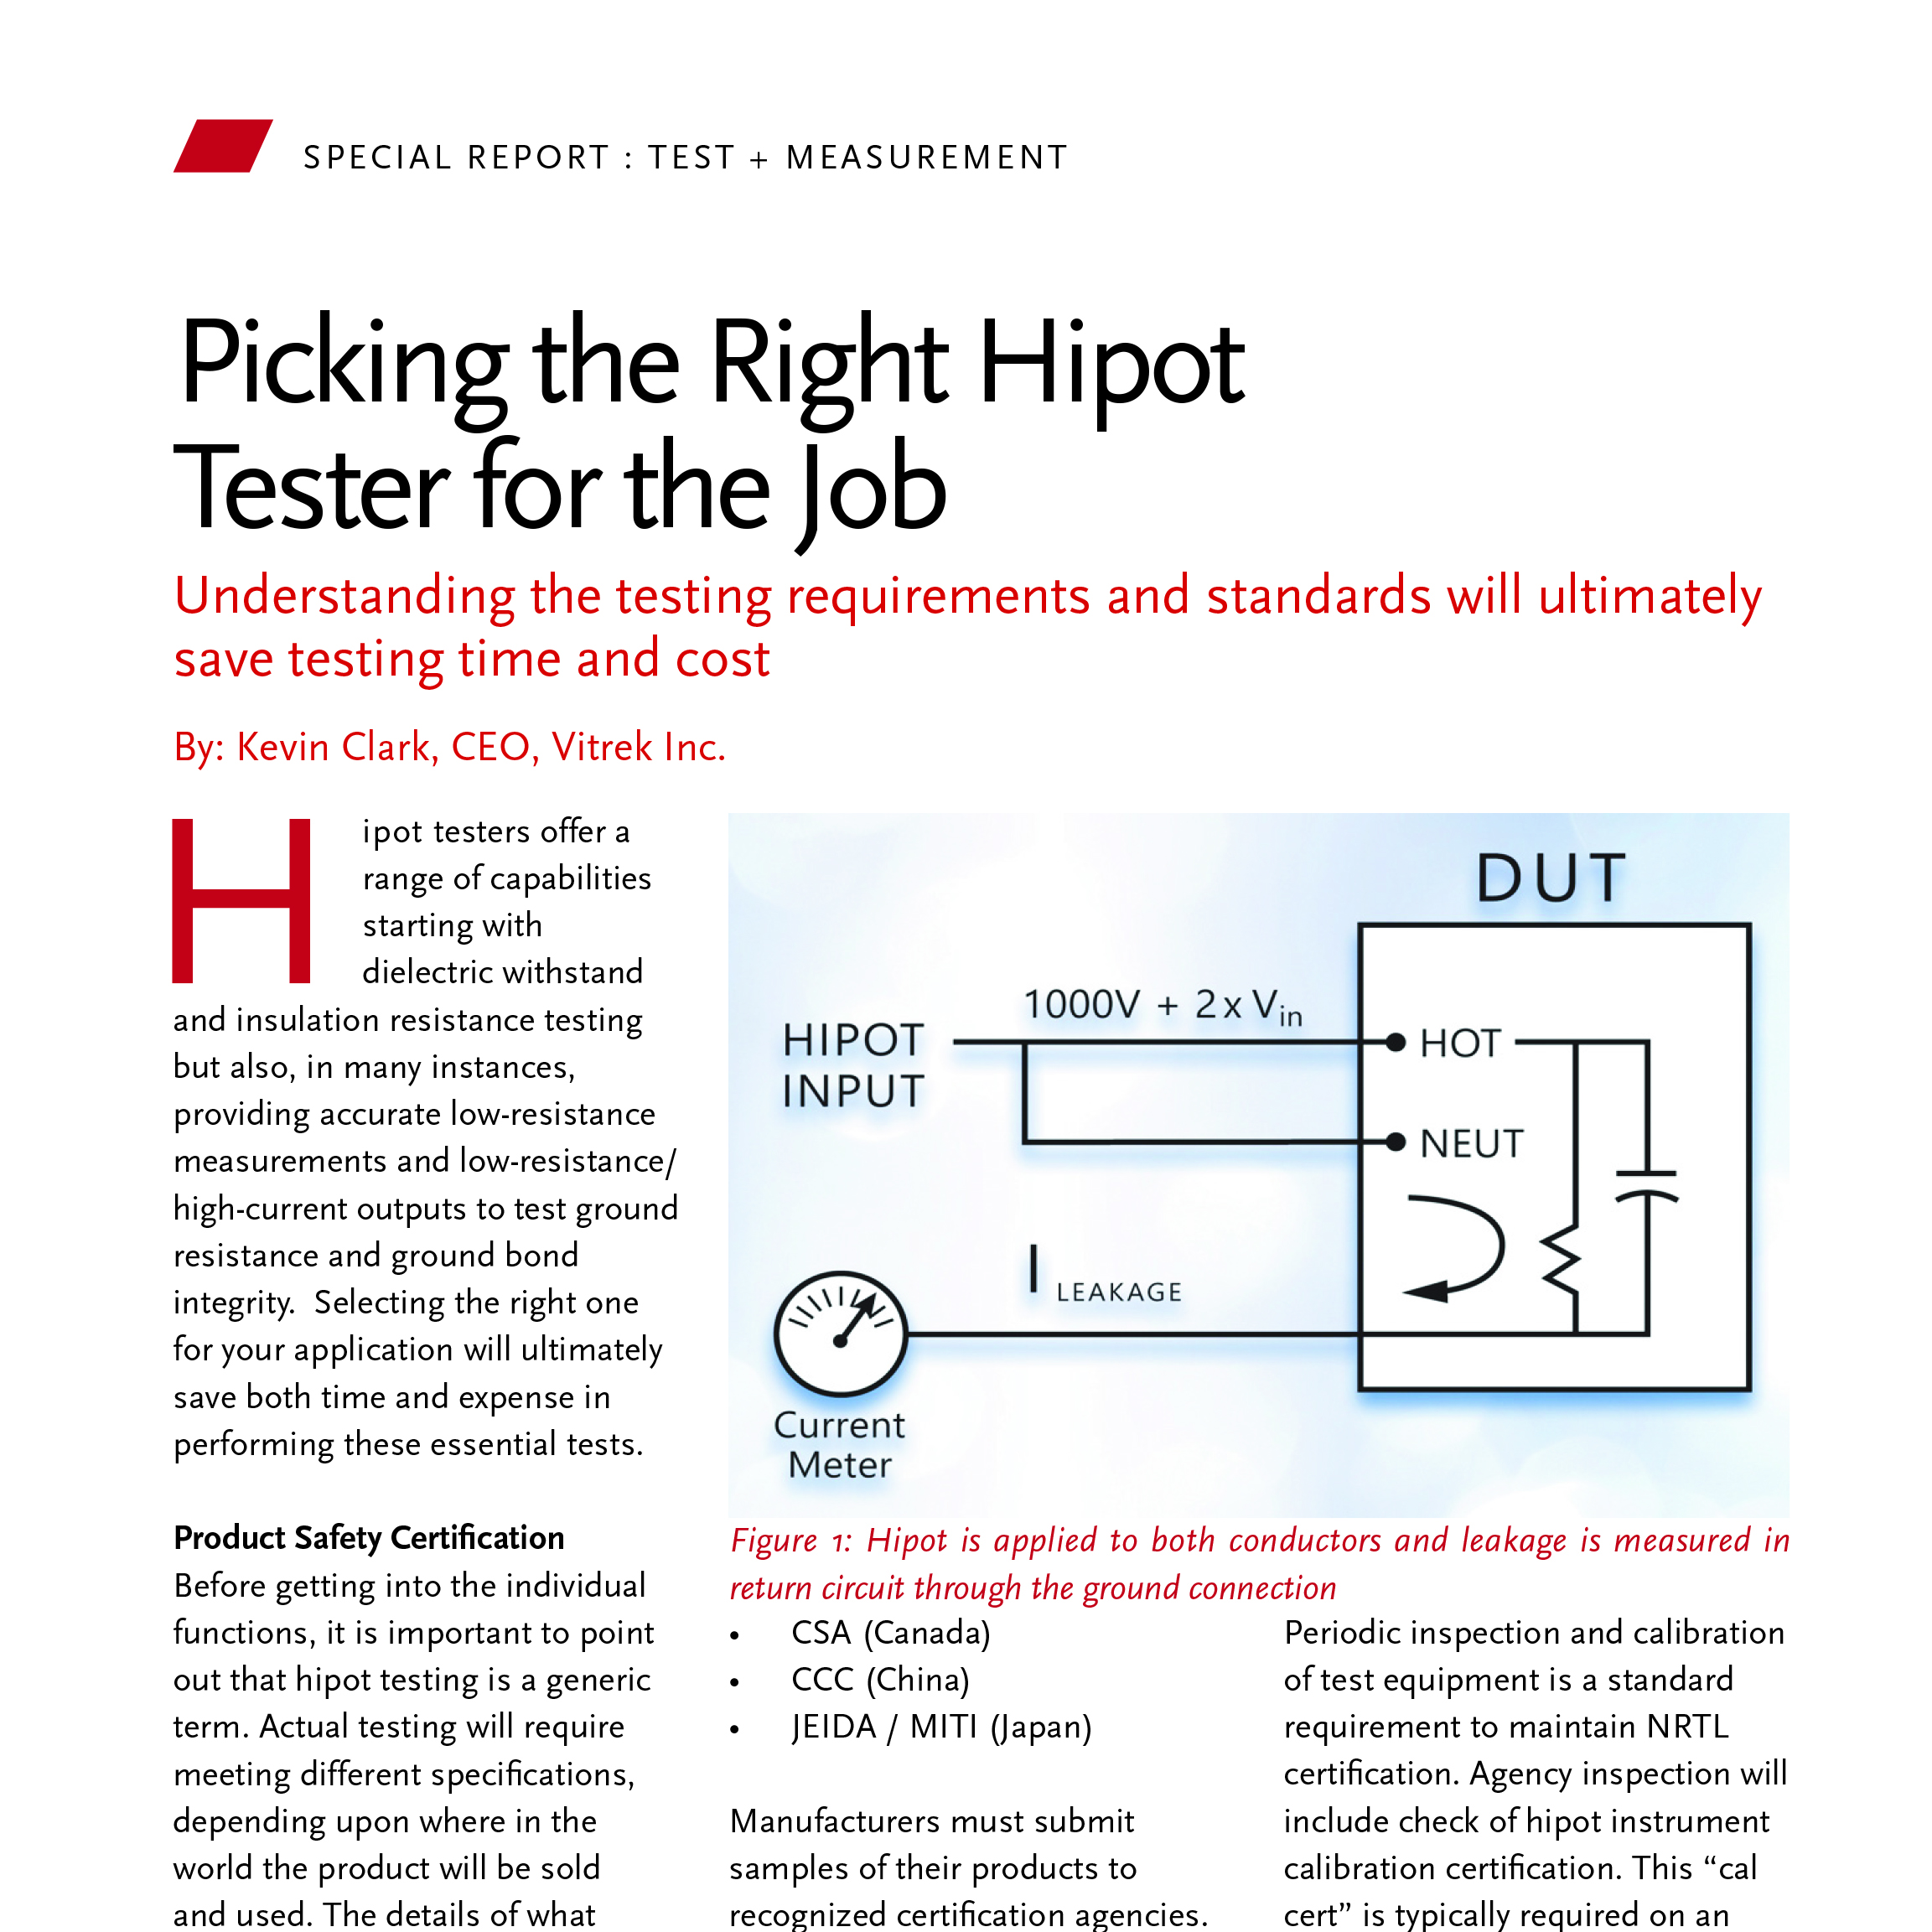 Picking The Right Hipot Tester For Job As Published In Power Resistance Measurement Circuit Diagram Systems Design Magazine 9 2018 Vitrek